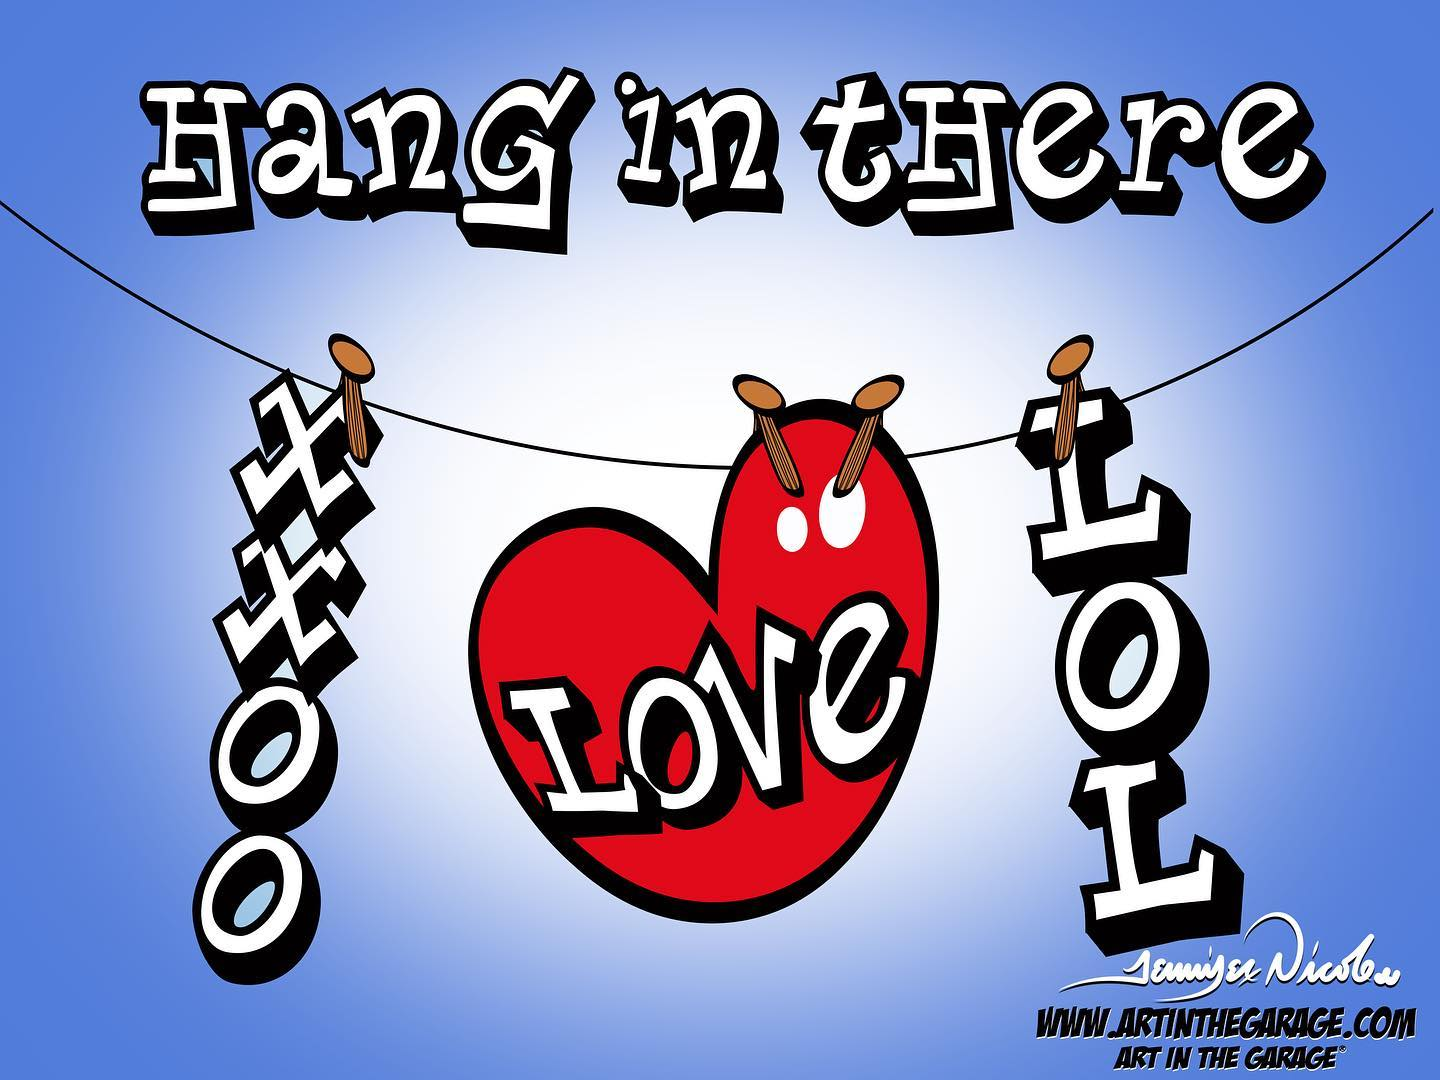 10-20-20 Hang In There